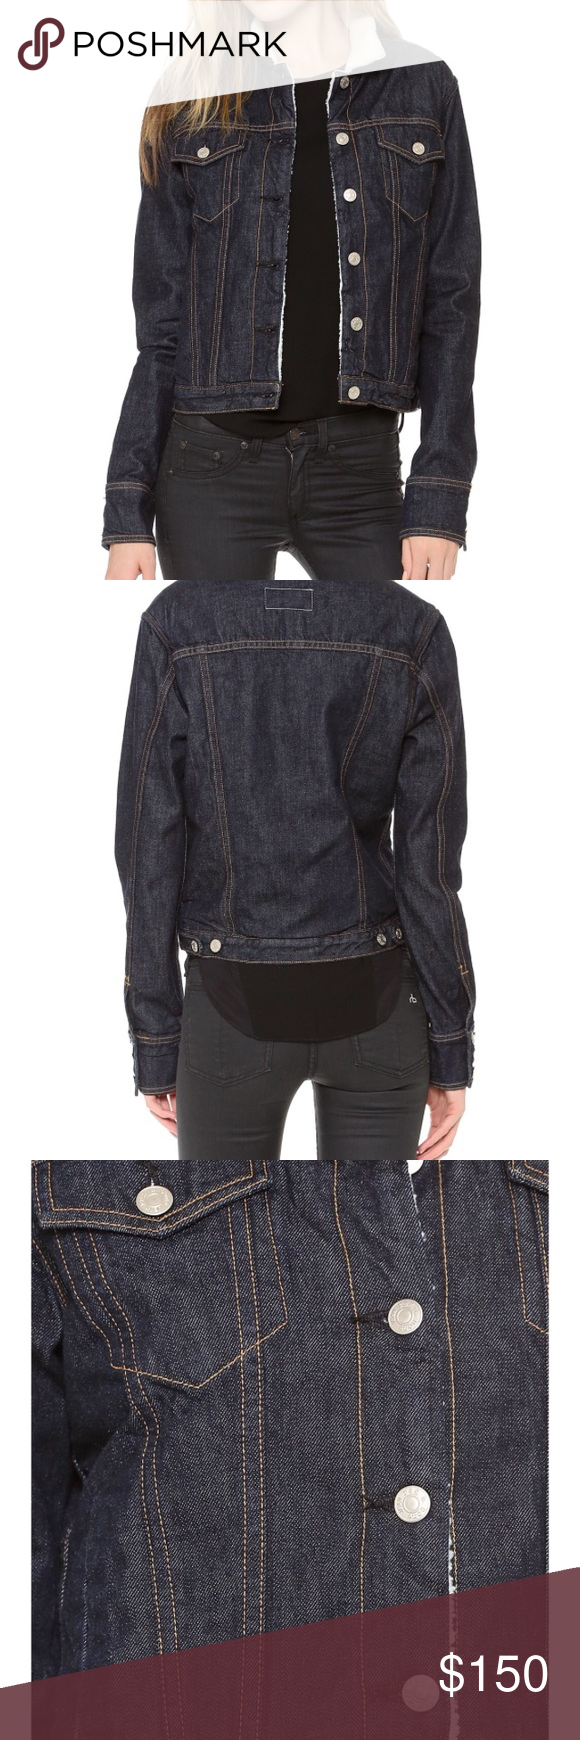 Nwt rag u bone faux shearling lined denim jacket a sturdy rag u bone